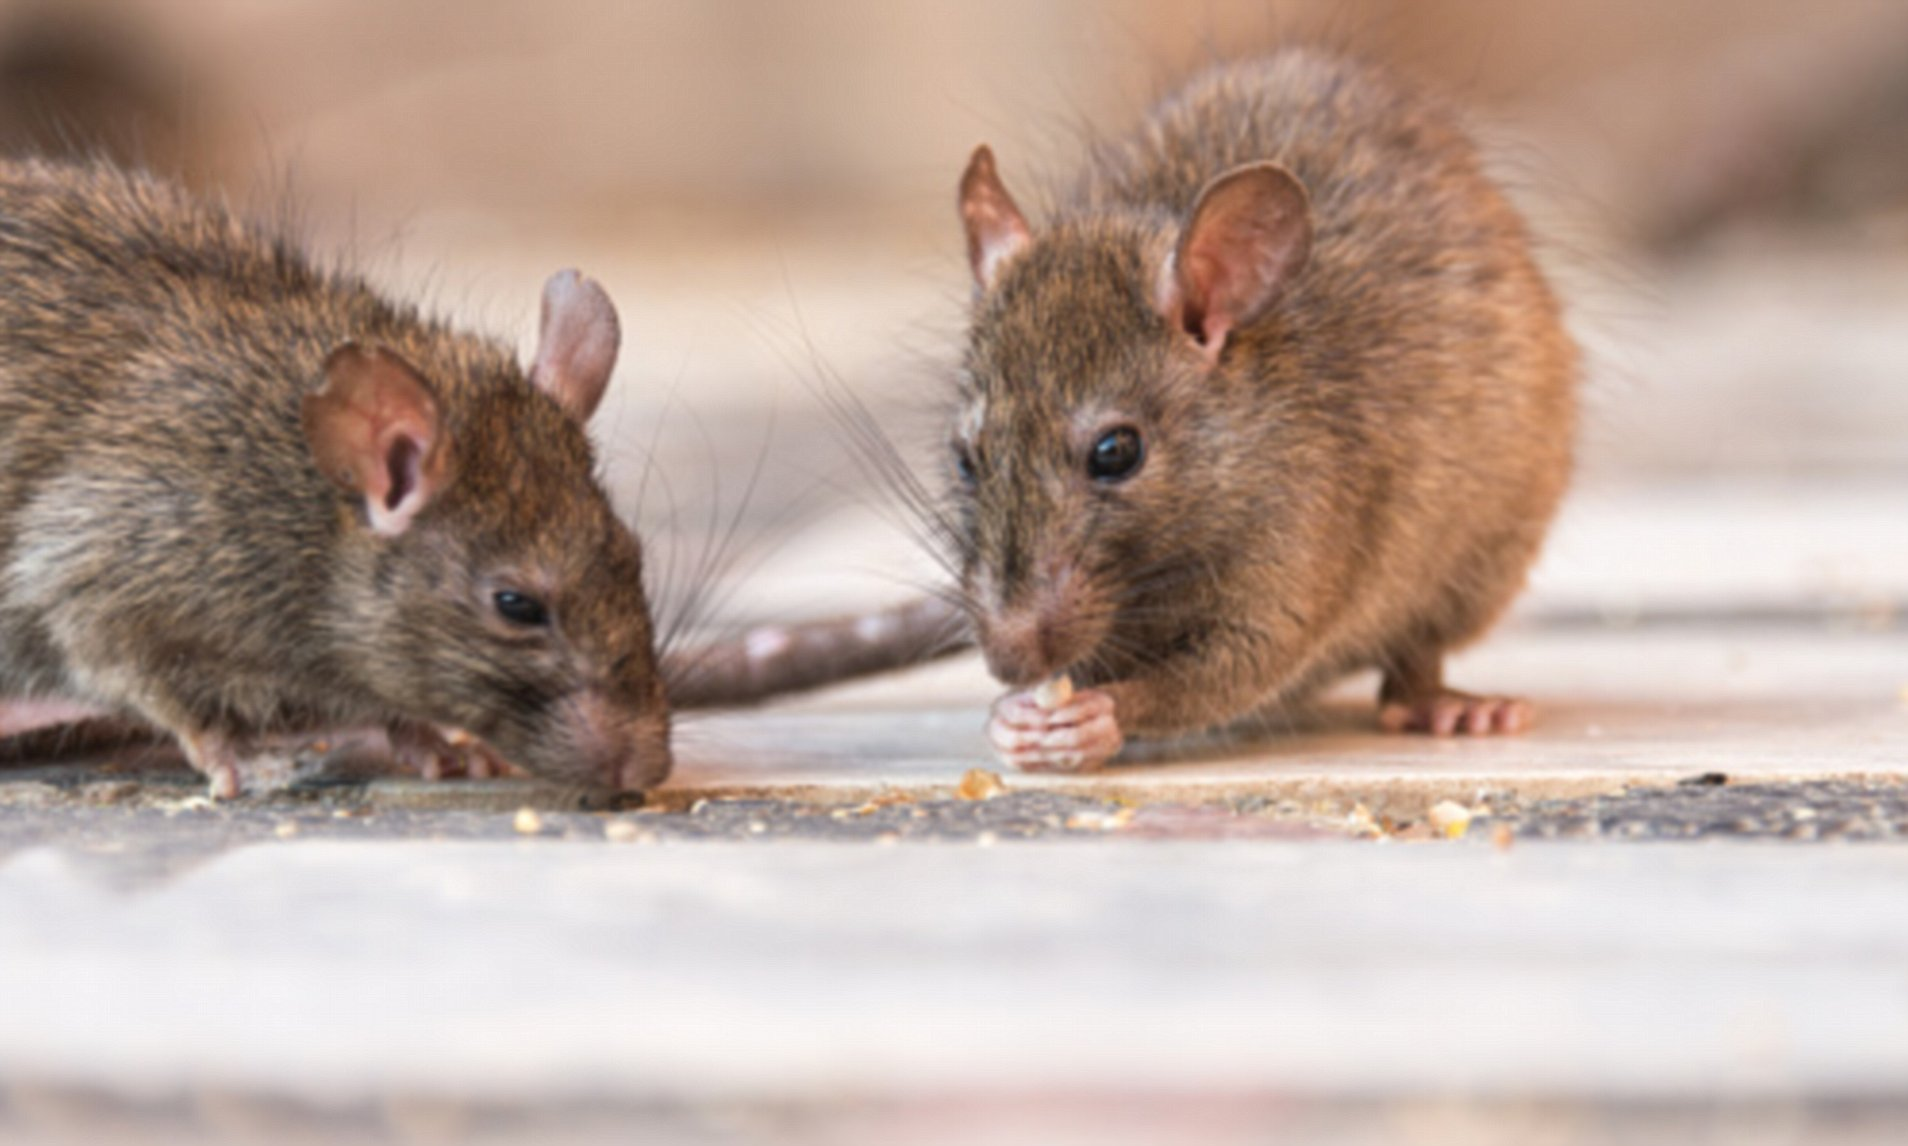 Child infected with life-threatening hantavirus after being inside ...